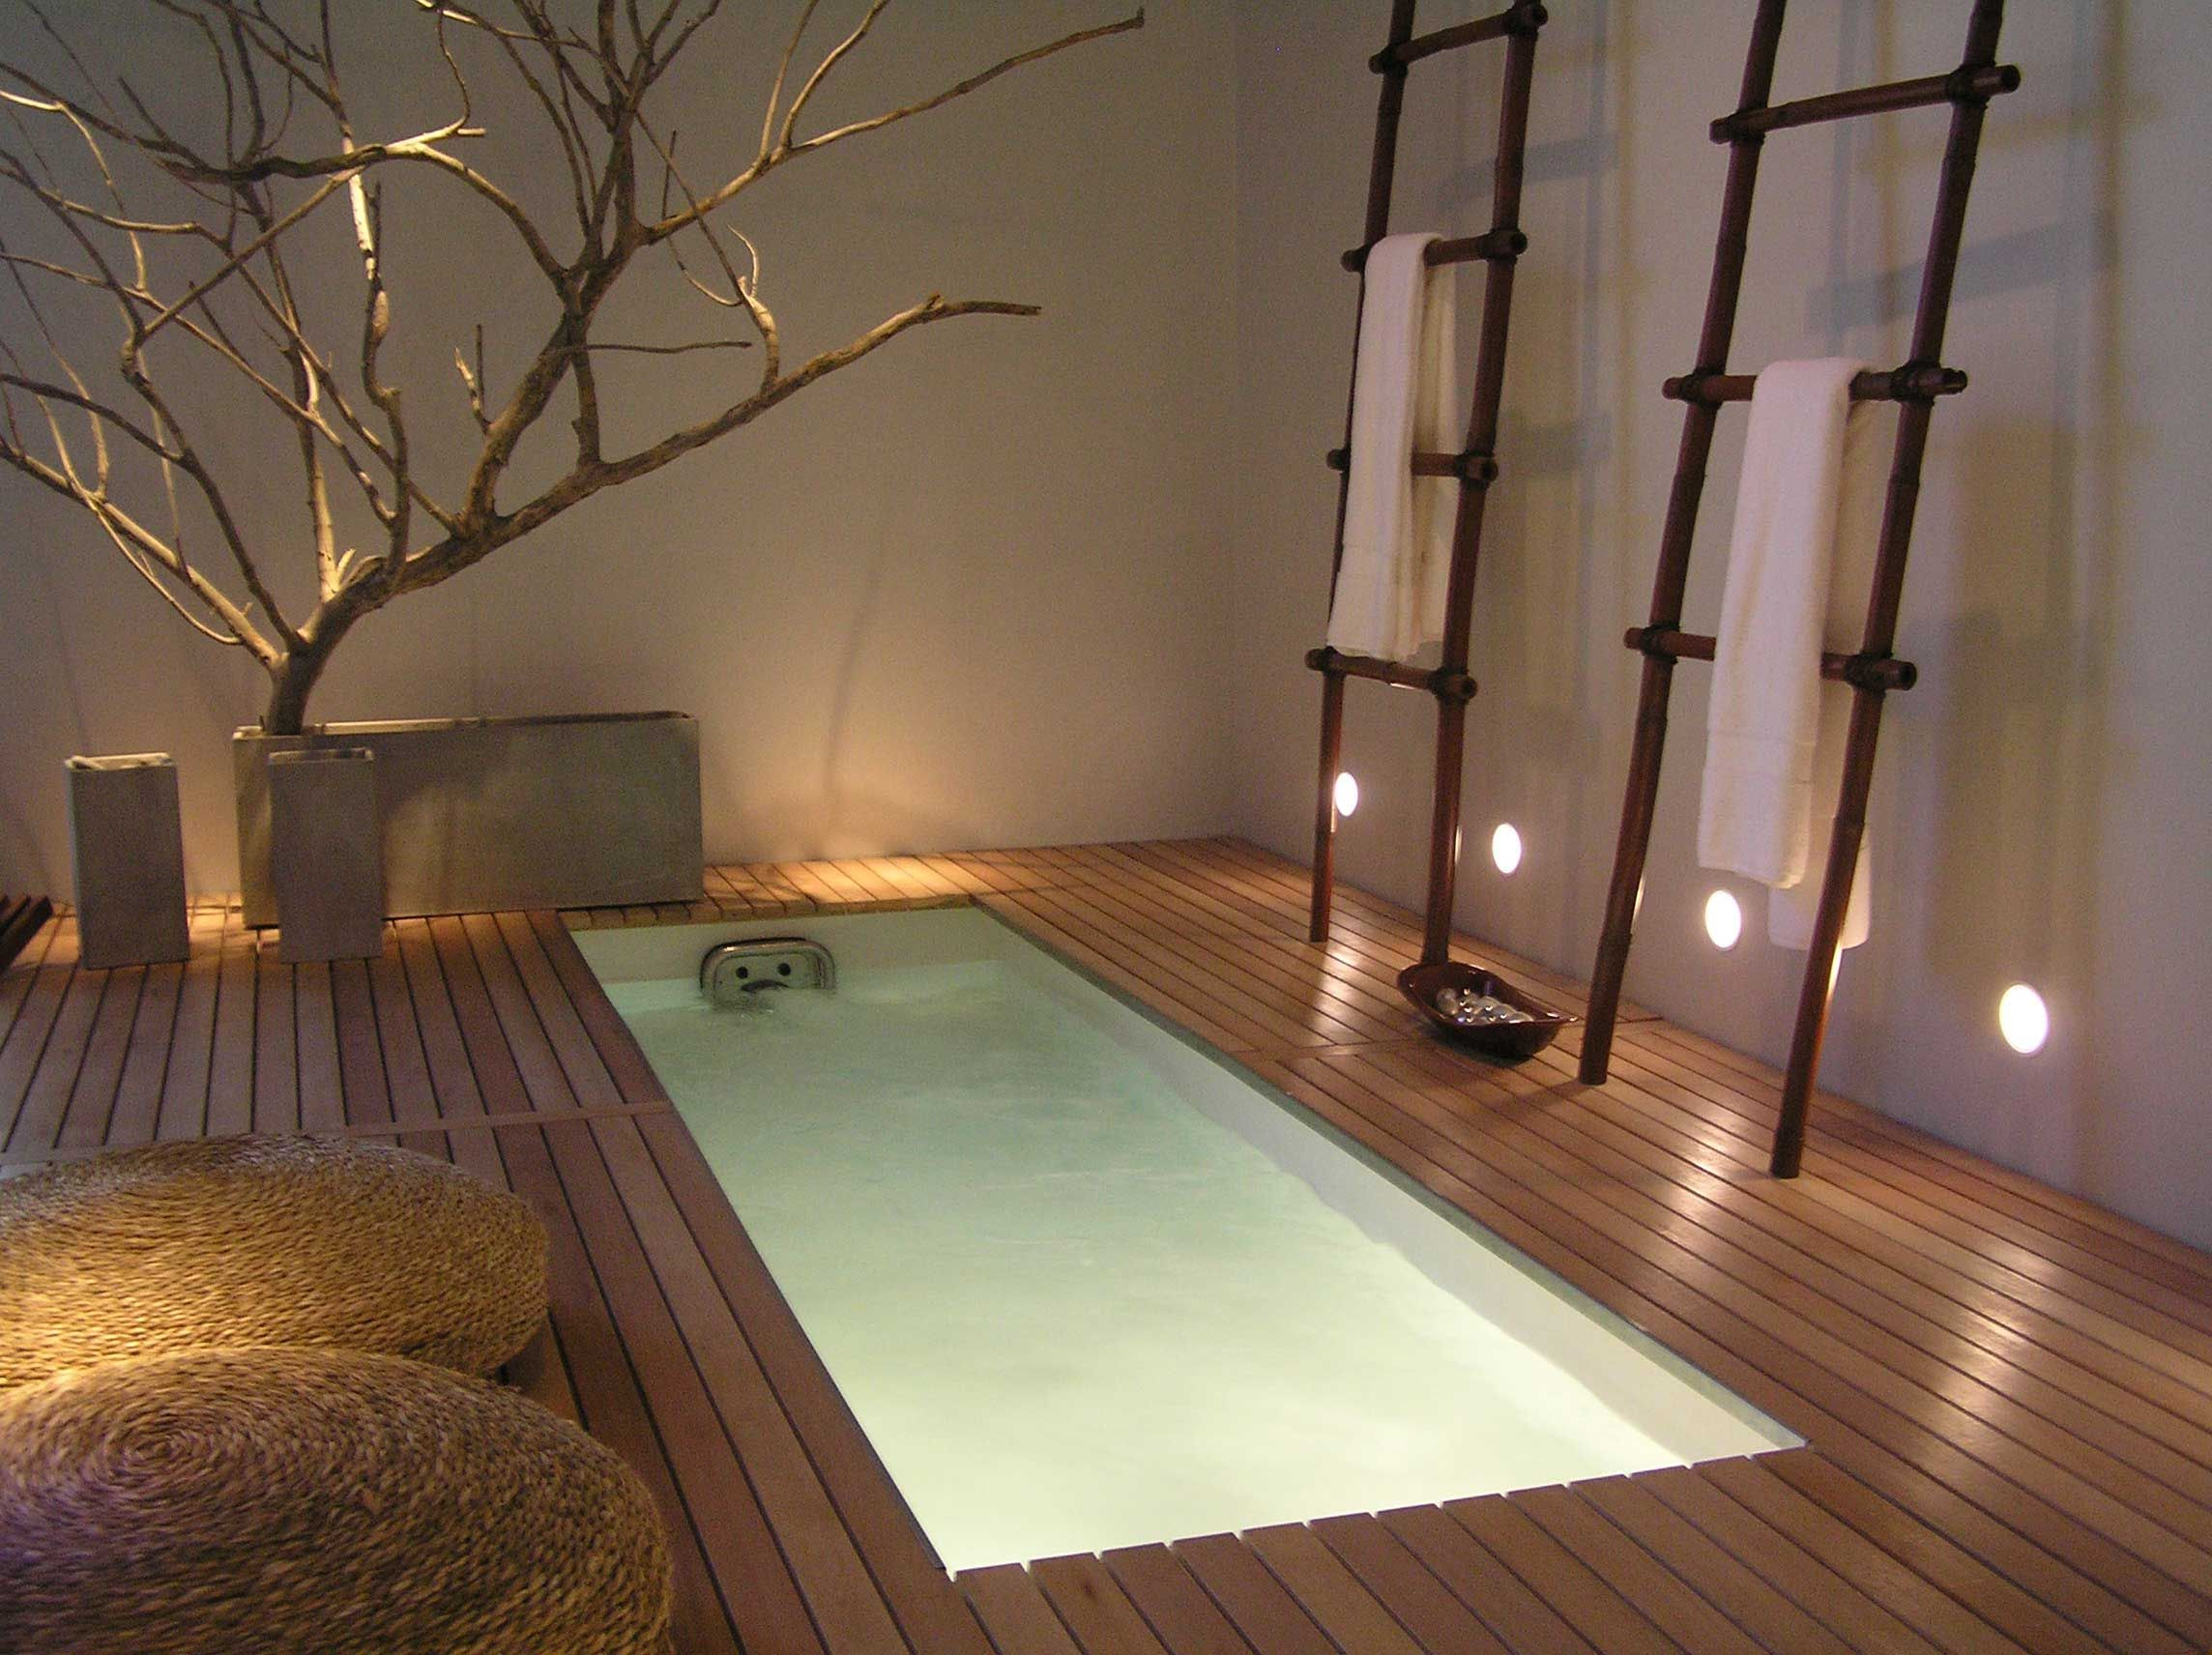 Zen Bath | Bathroom | Pinterest | Contemporary interior design ...